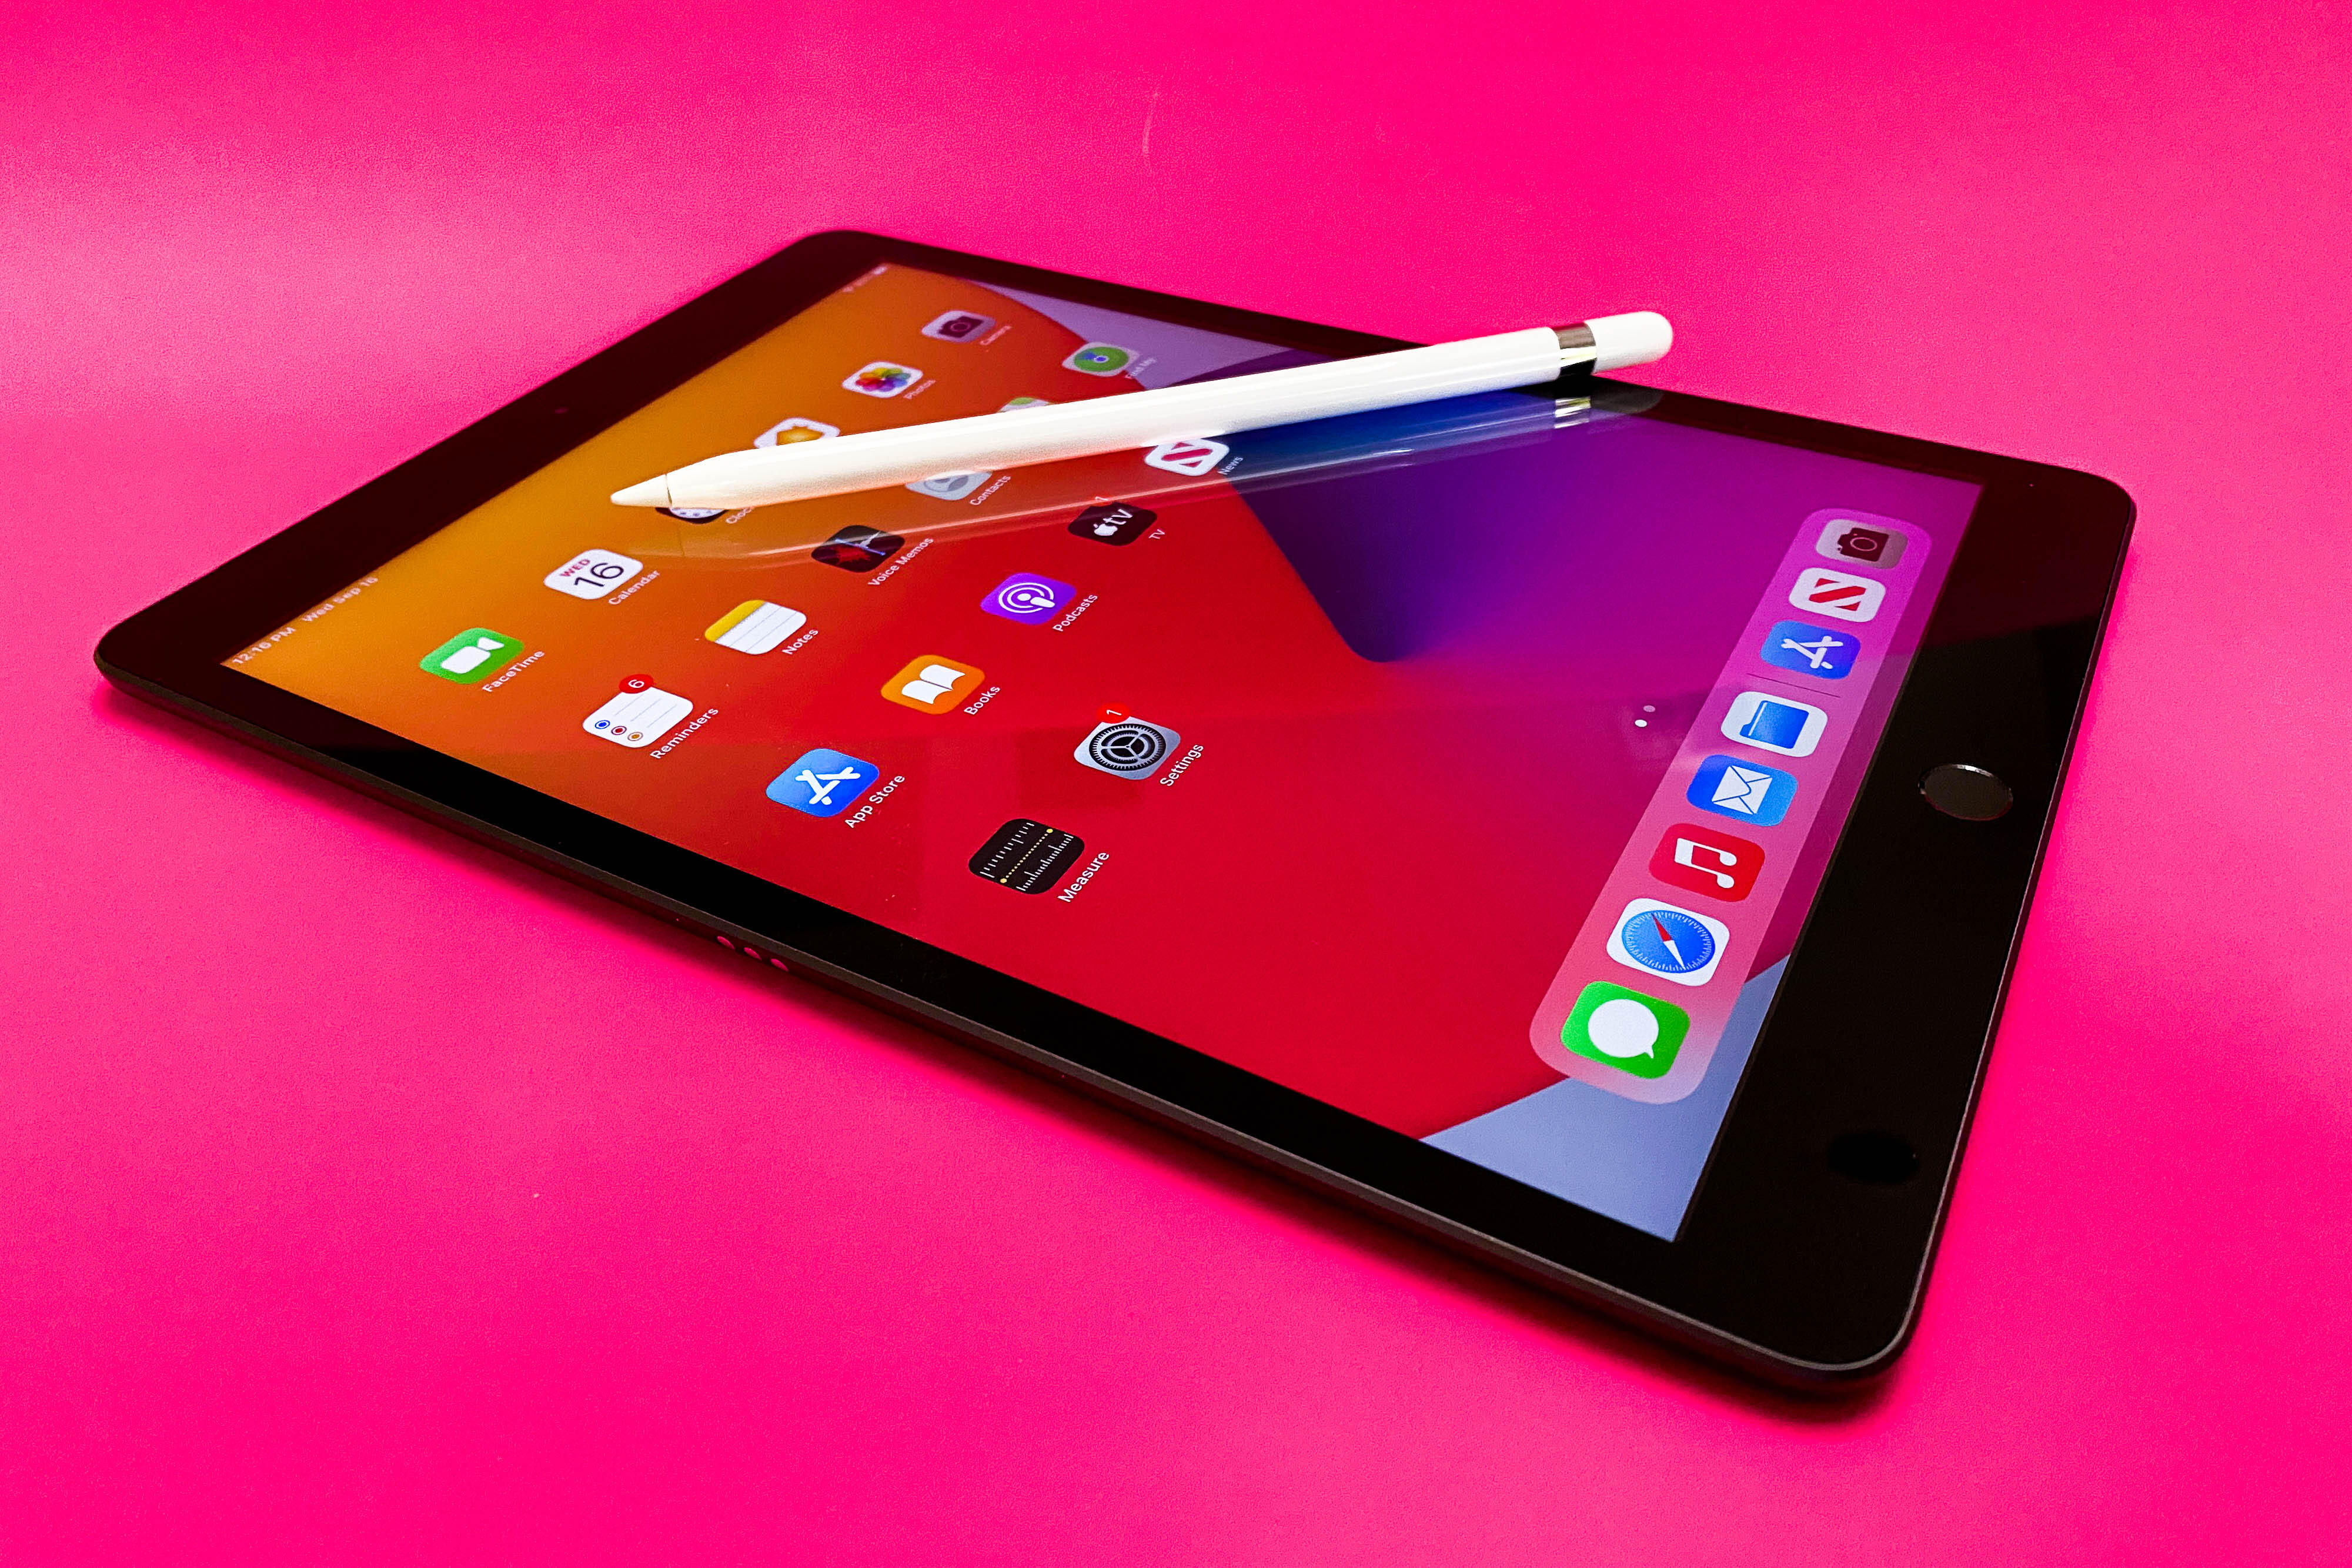 Apple iPad (8th-gen, 2020) review: The best iPad value by far - CNET